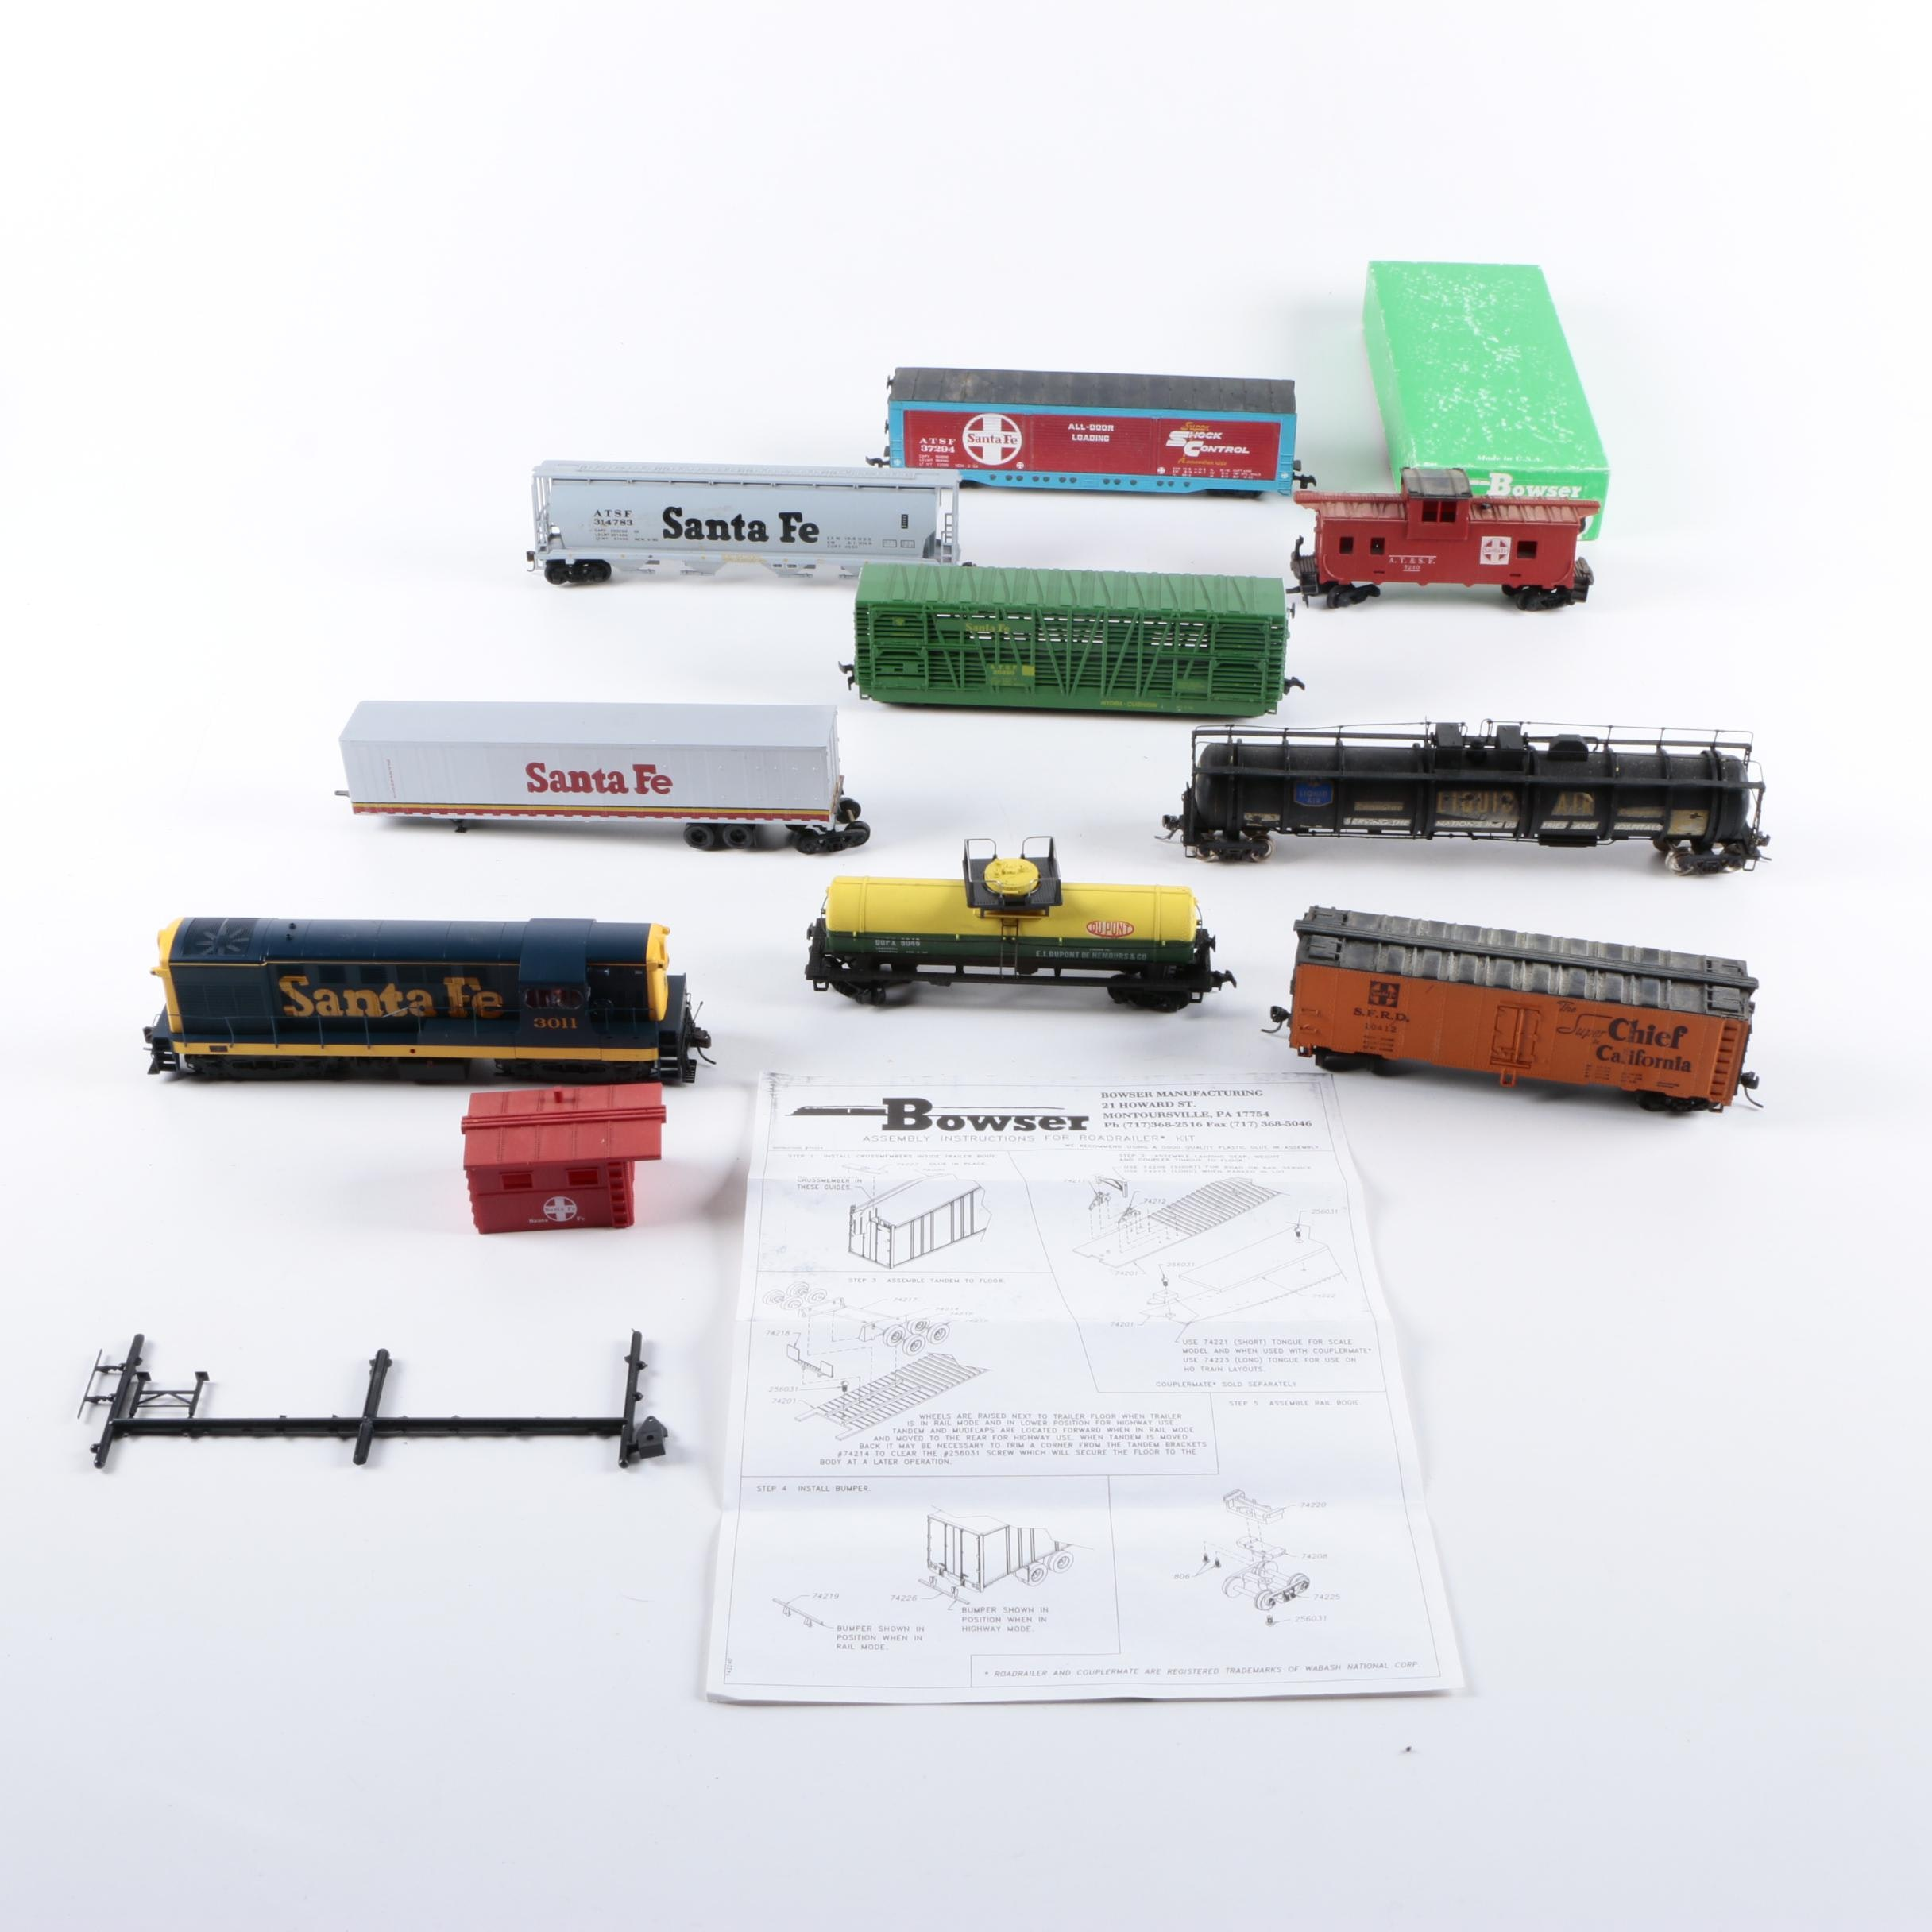 Assorted HO and N Scale Train Cars Including Bowser Model